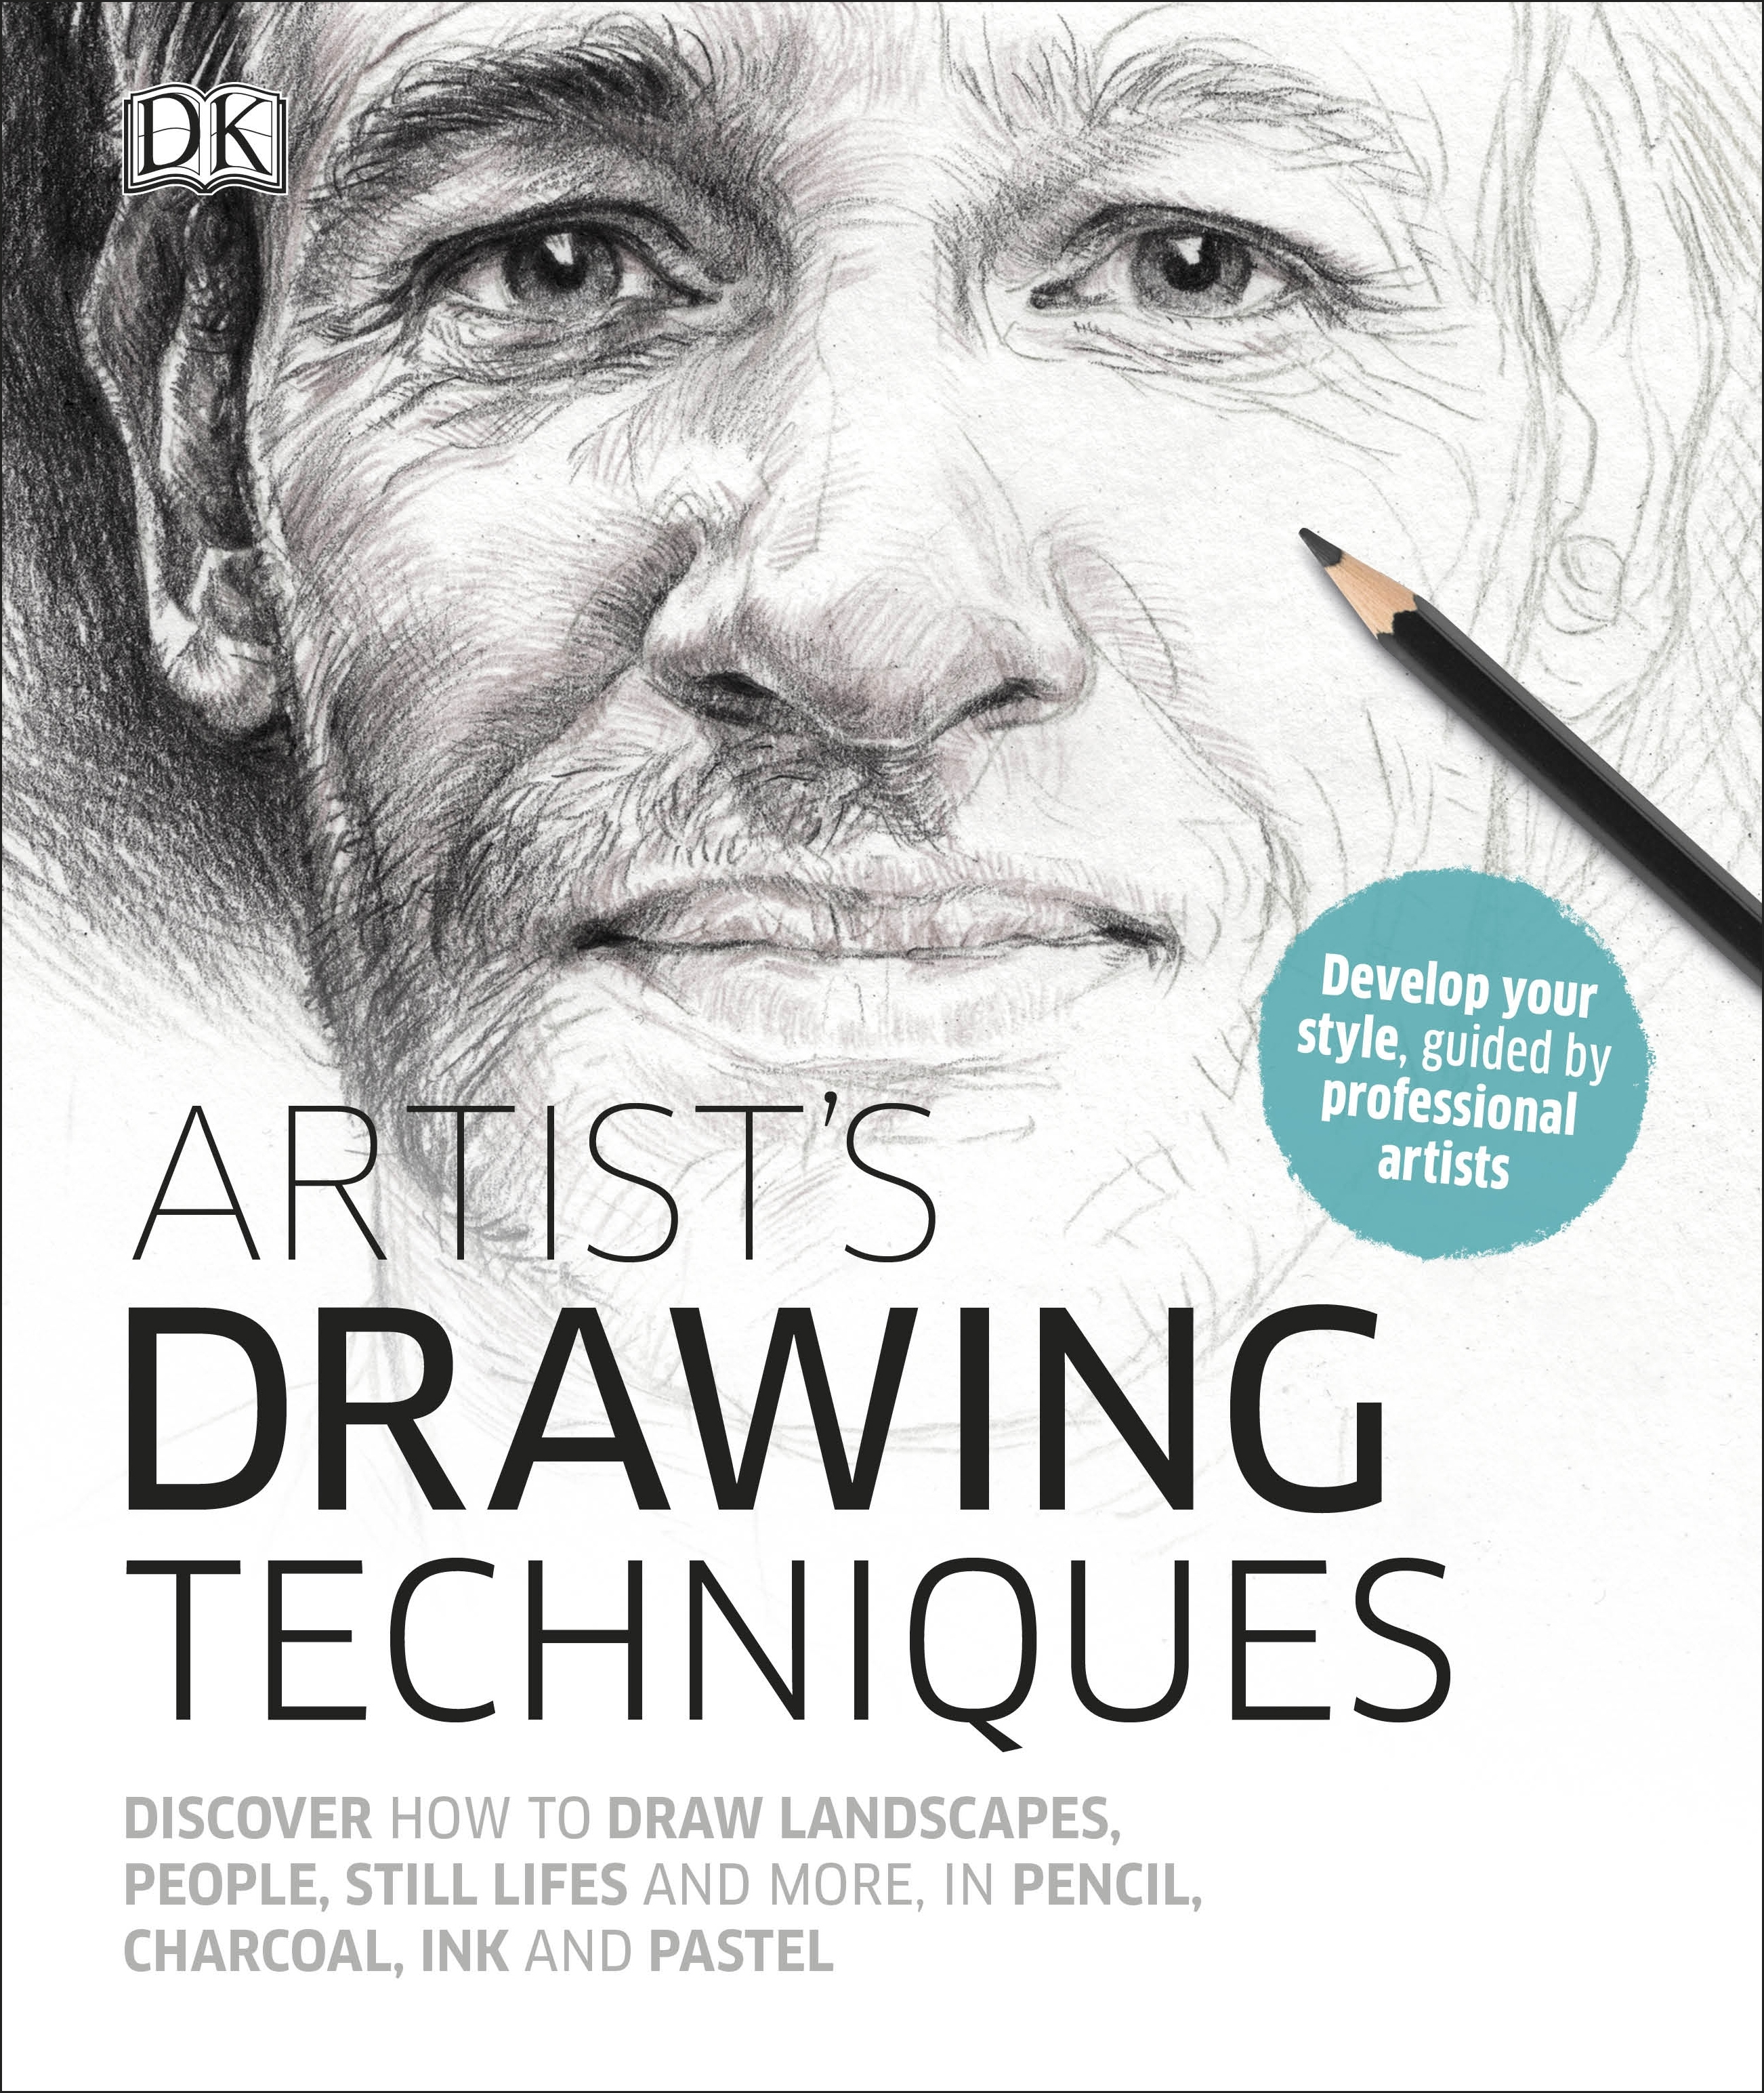 Artist's Drawing Techniques Discover How to Draw Landscapes, People, Still Lifes and More, in Pencil, Charcoal, Pen and Pastel